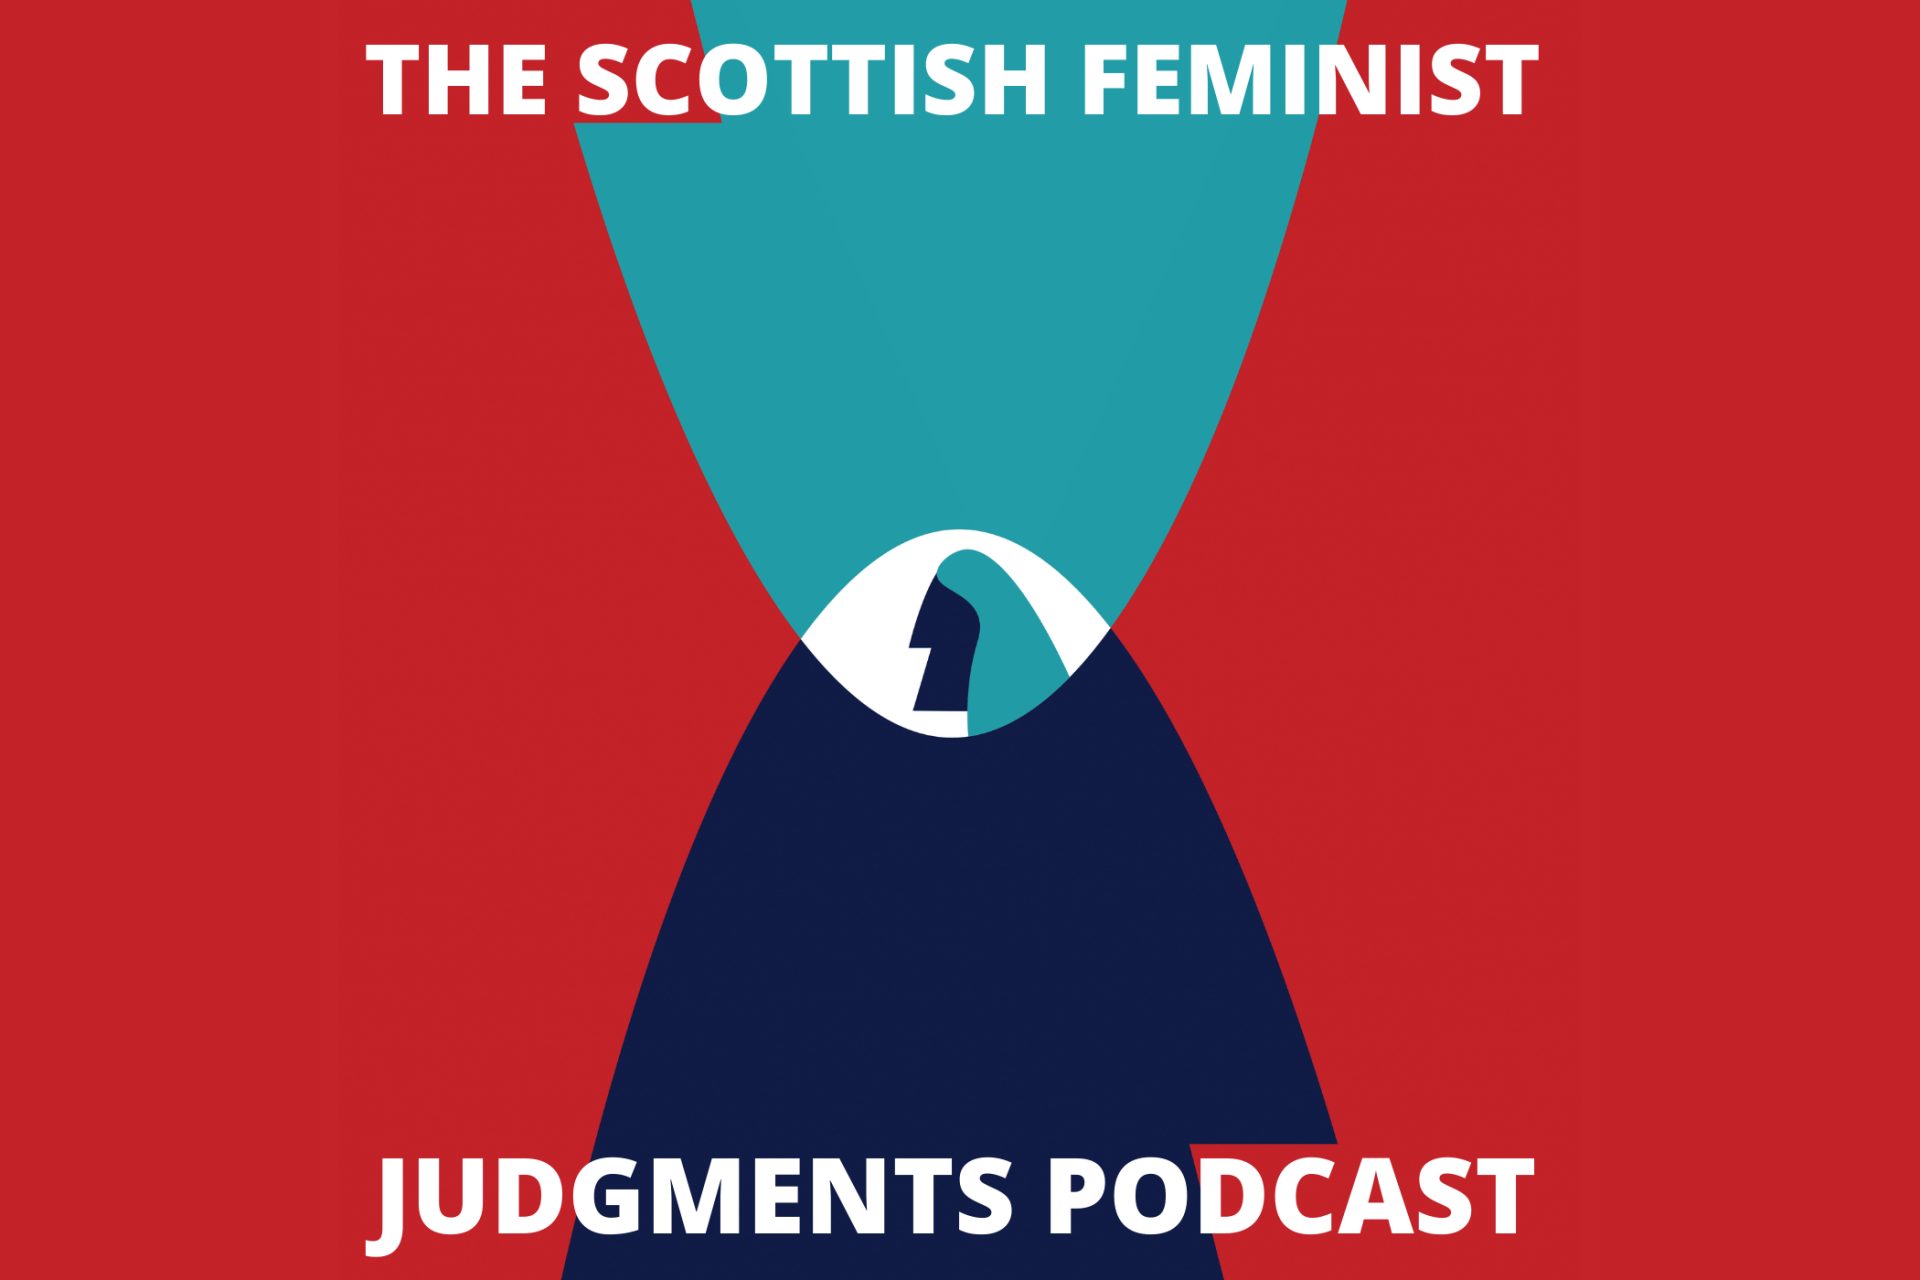 Scottish Feminist Judgments Podcast logo